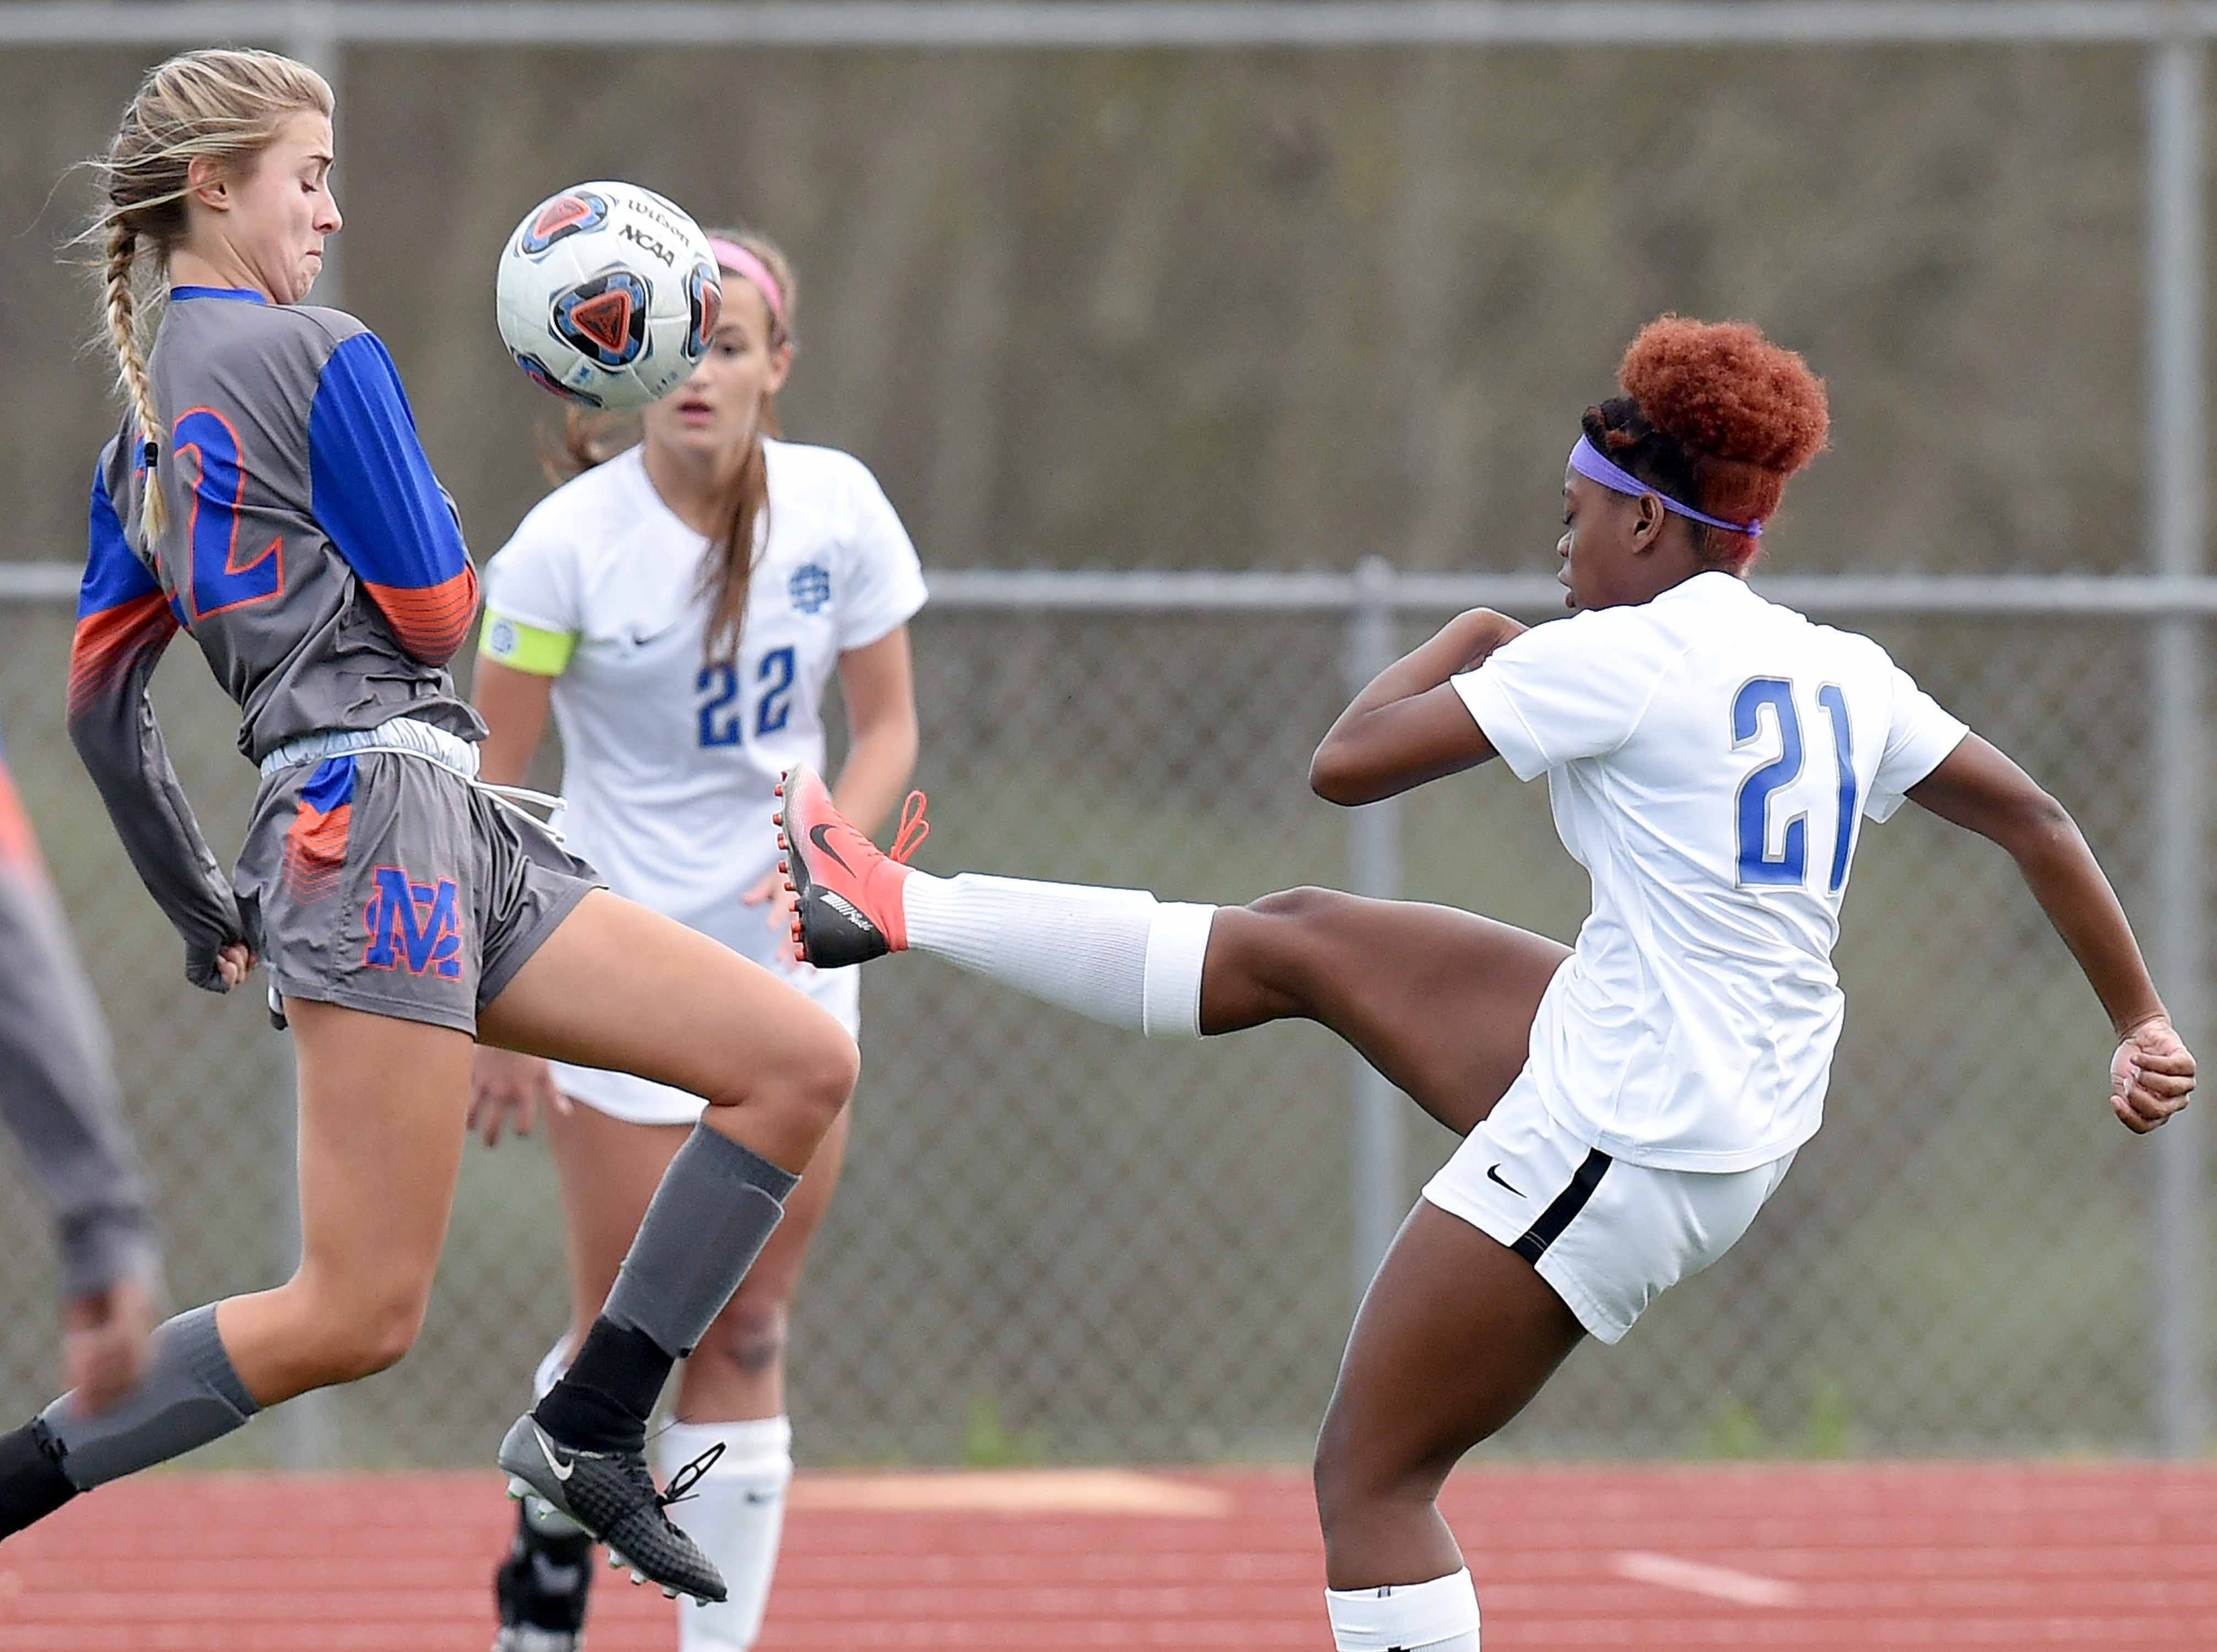 Ocean Springs' Loren Winters (21) clears the ball past Madison Central's Cara Dale Palmer (22) in the Class 6A state championship in the MHSAA BlueCross Blue Shield of Mississippi Soccer Classic on Saturday, February 9, 2019, at Ridgeland High School in Ridgeland, Miss.